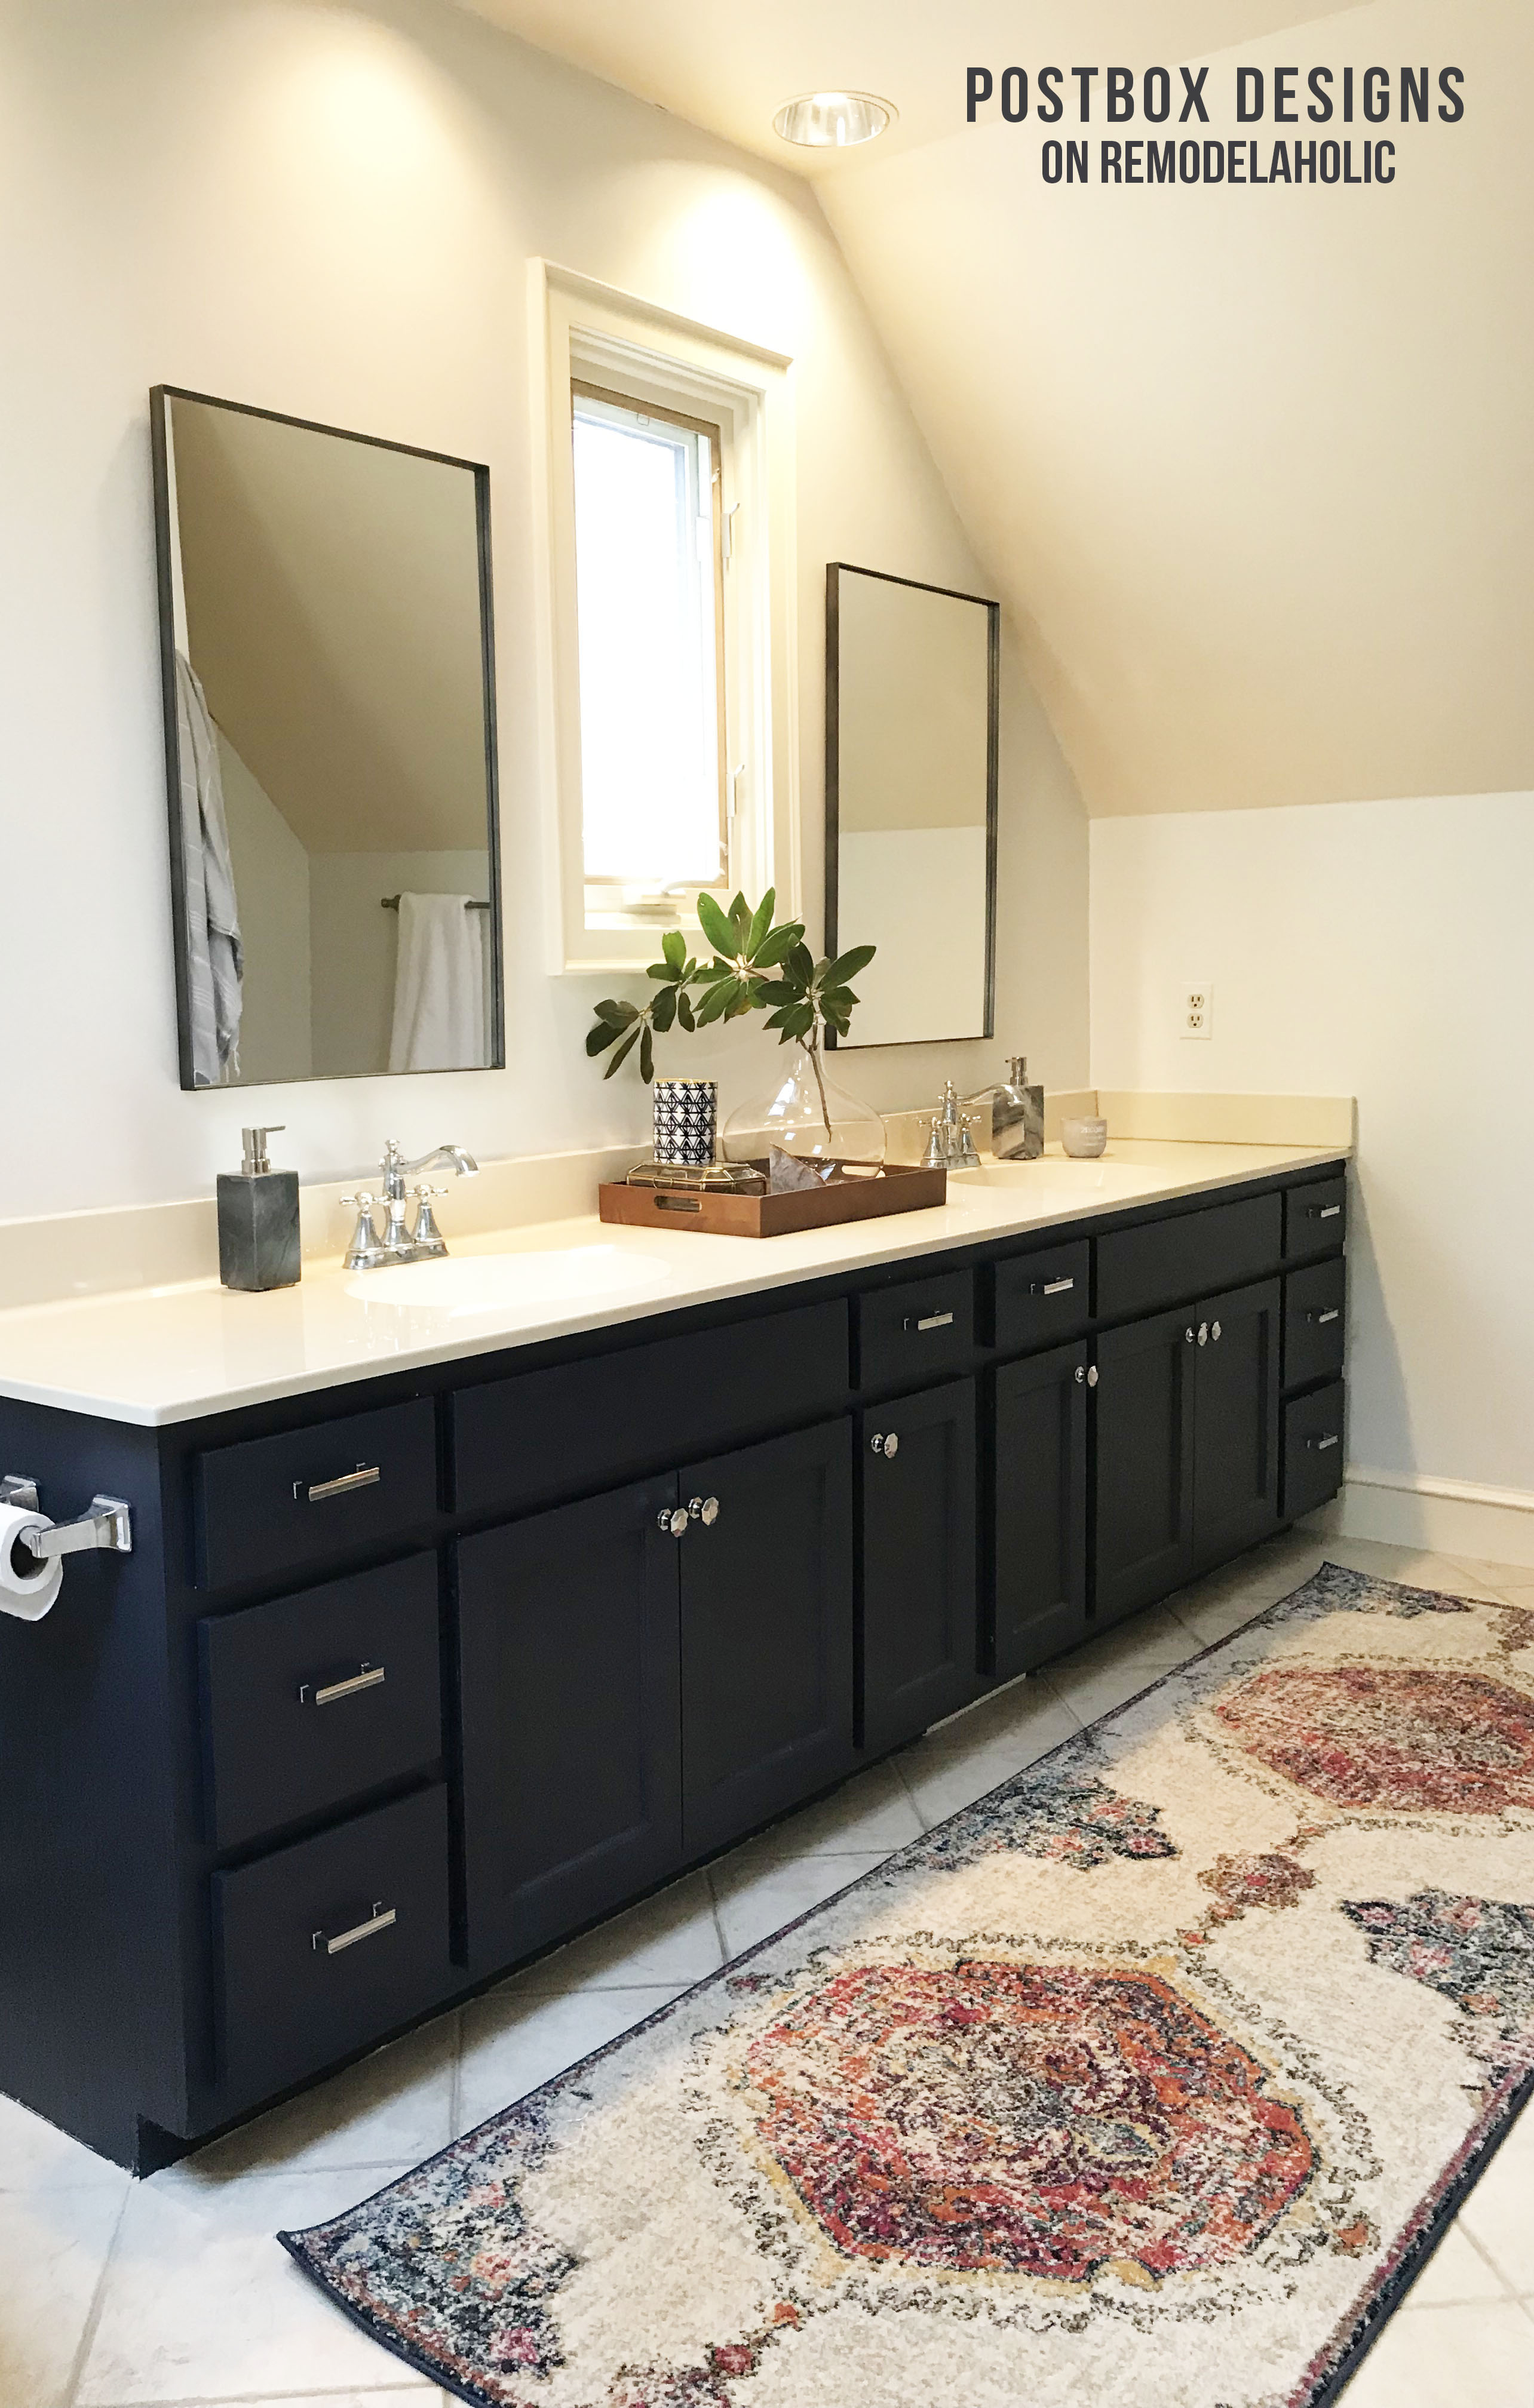 Remodelaholic | $950 Budget Bathroom Makeover: How I Updated My